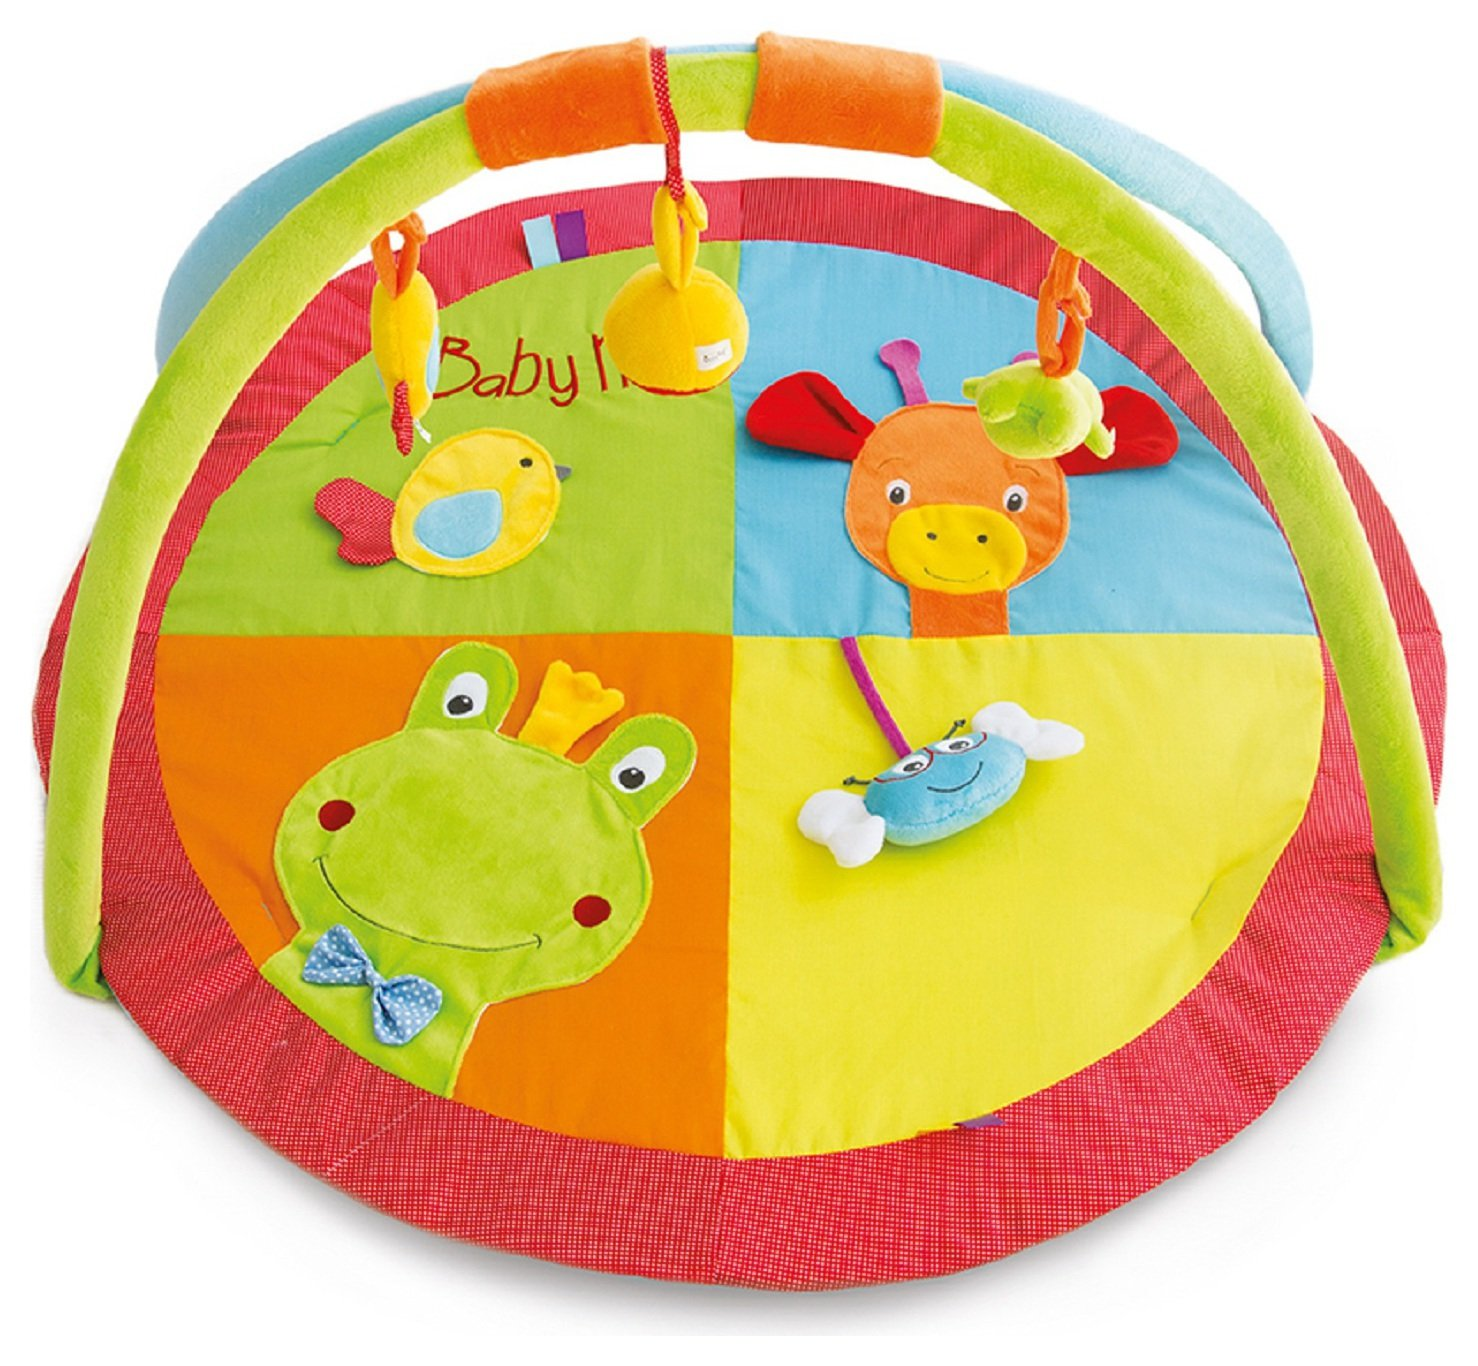 Image of Bebe Playmat - Multicoloured